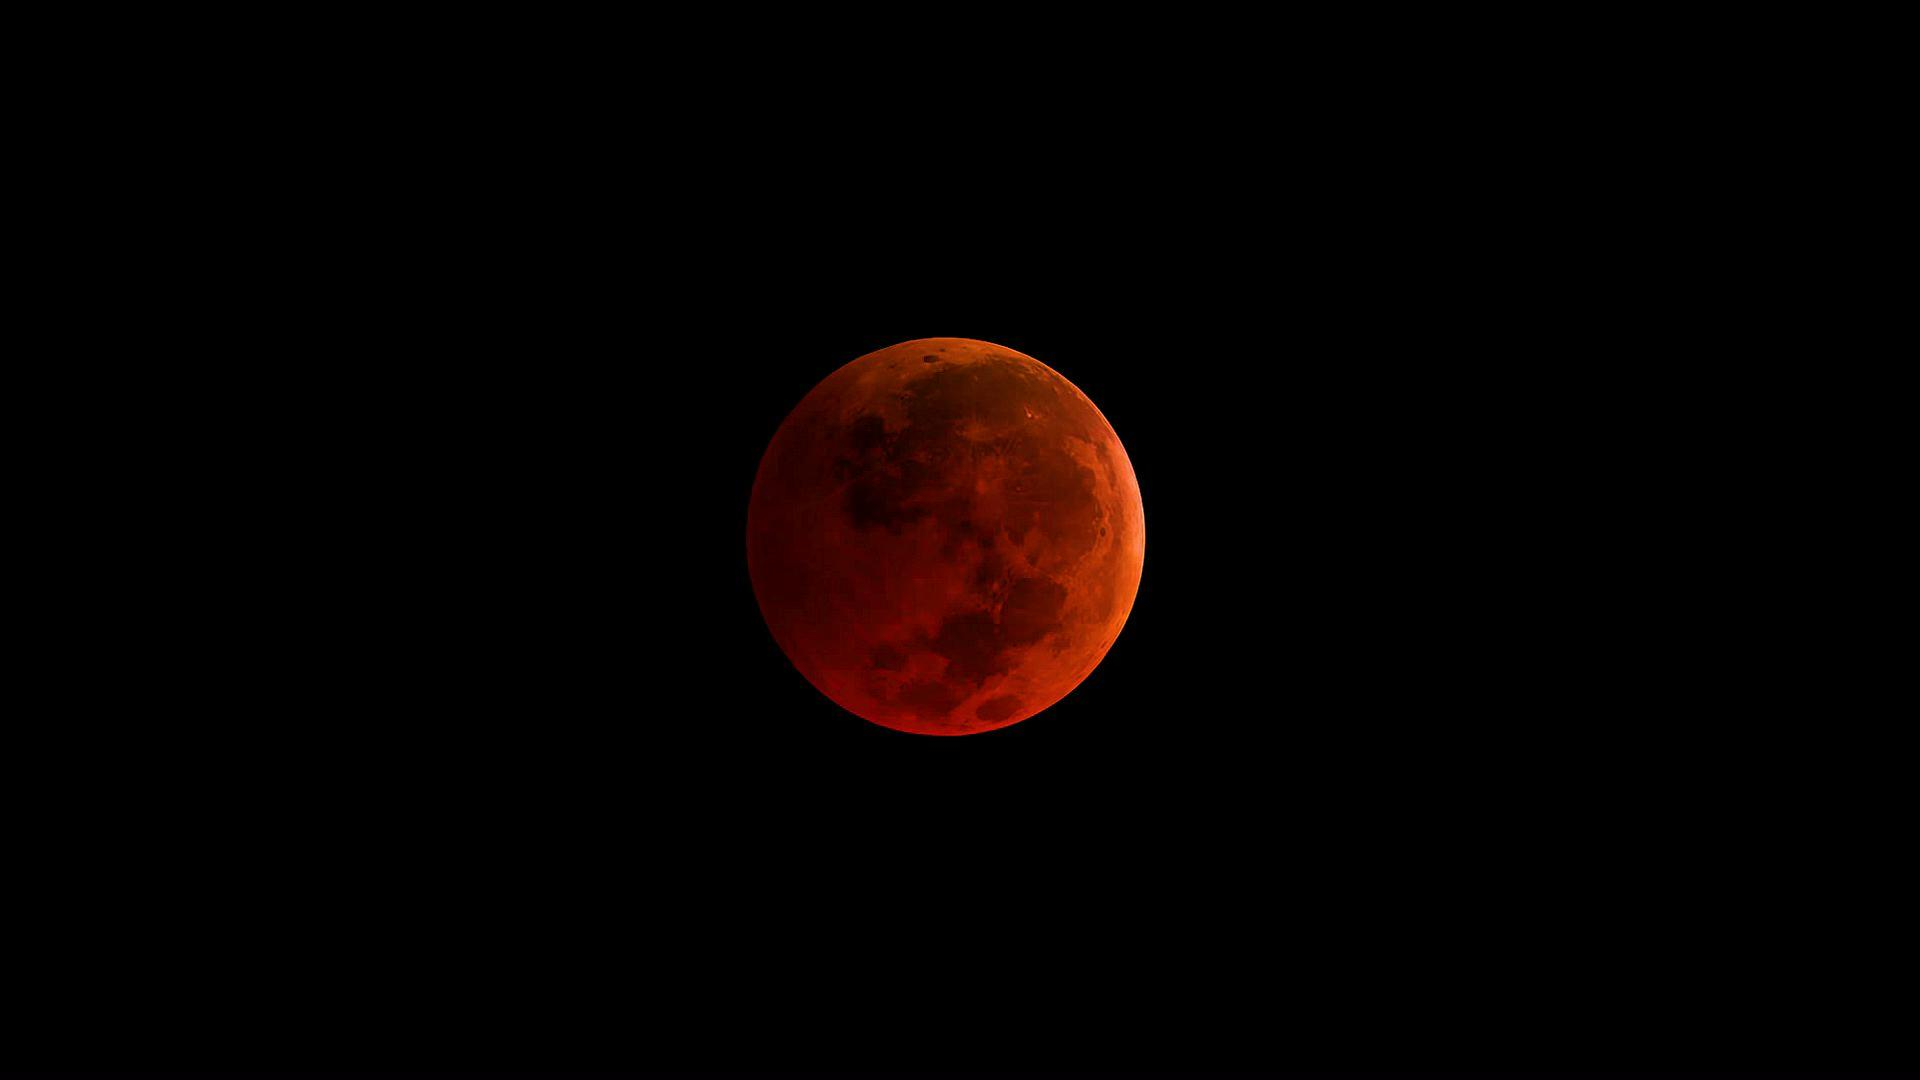 Chicago not well placed for super blue blood moon chicago 31 will result in a super blue blood moon pooptronica Image collections